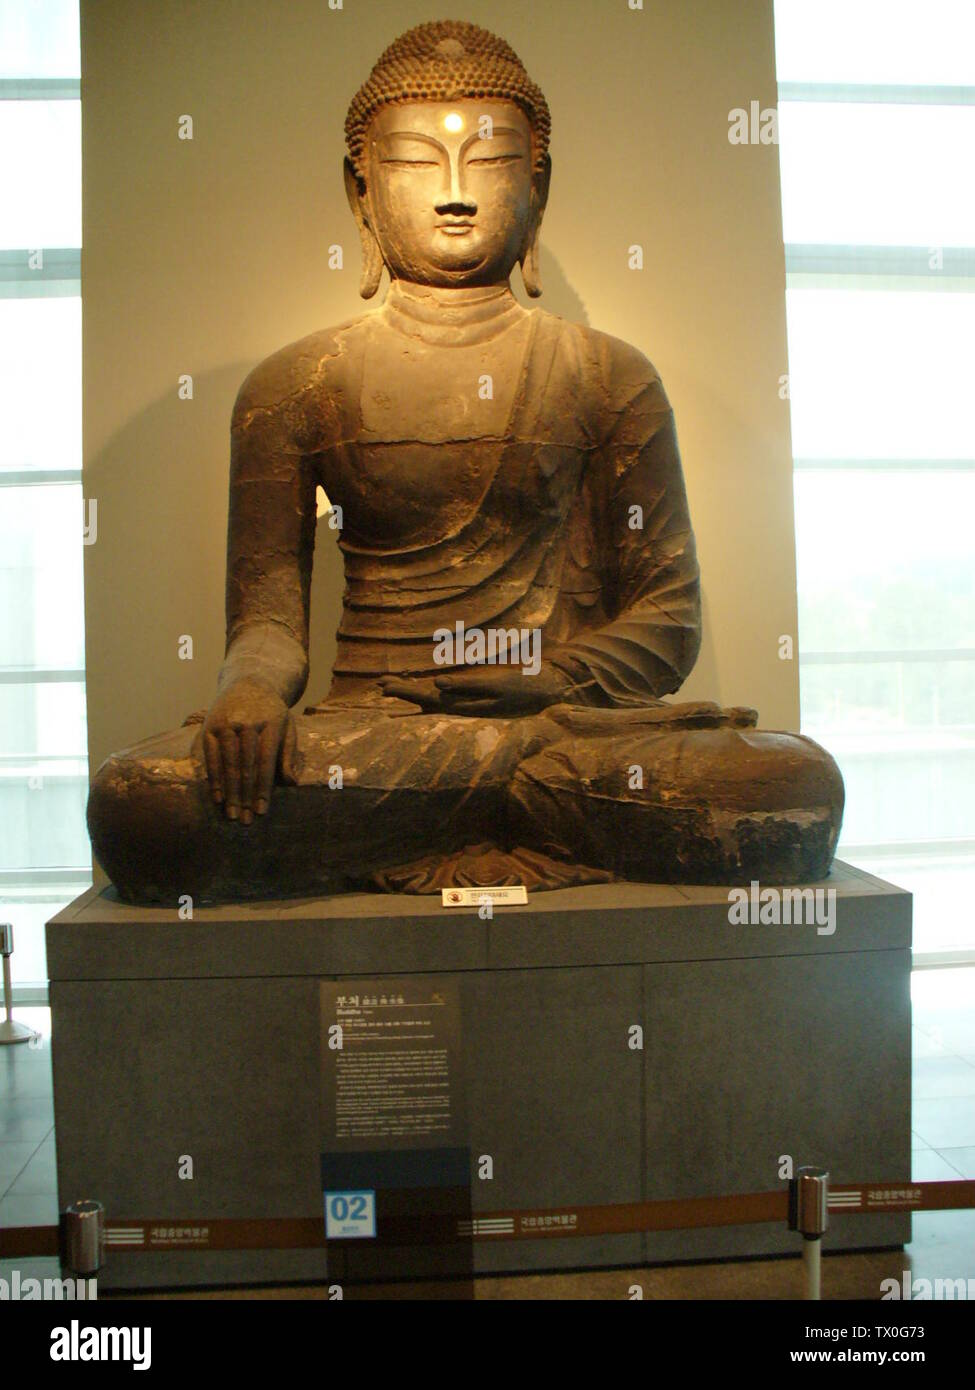 'English: Seated Buddha from the Koryŏ period; Photo:  26 September 2005 (according to Exif data)Statue: About a millennium ago; Own work; User:Isaac Crumm; ' - Stock Image